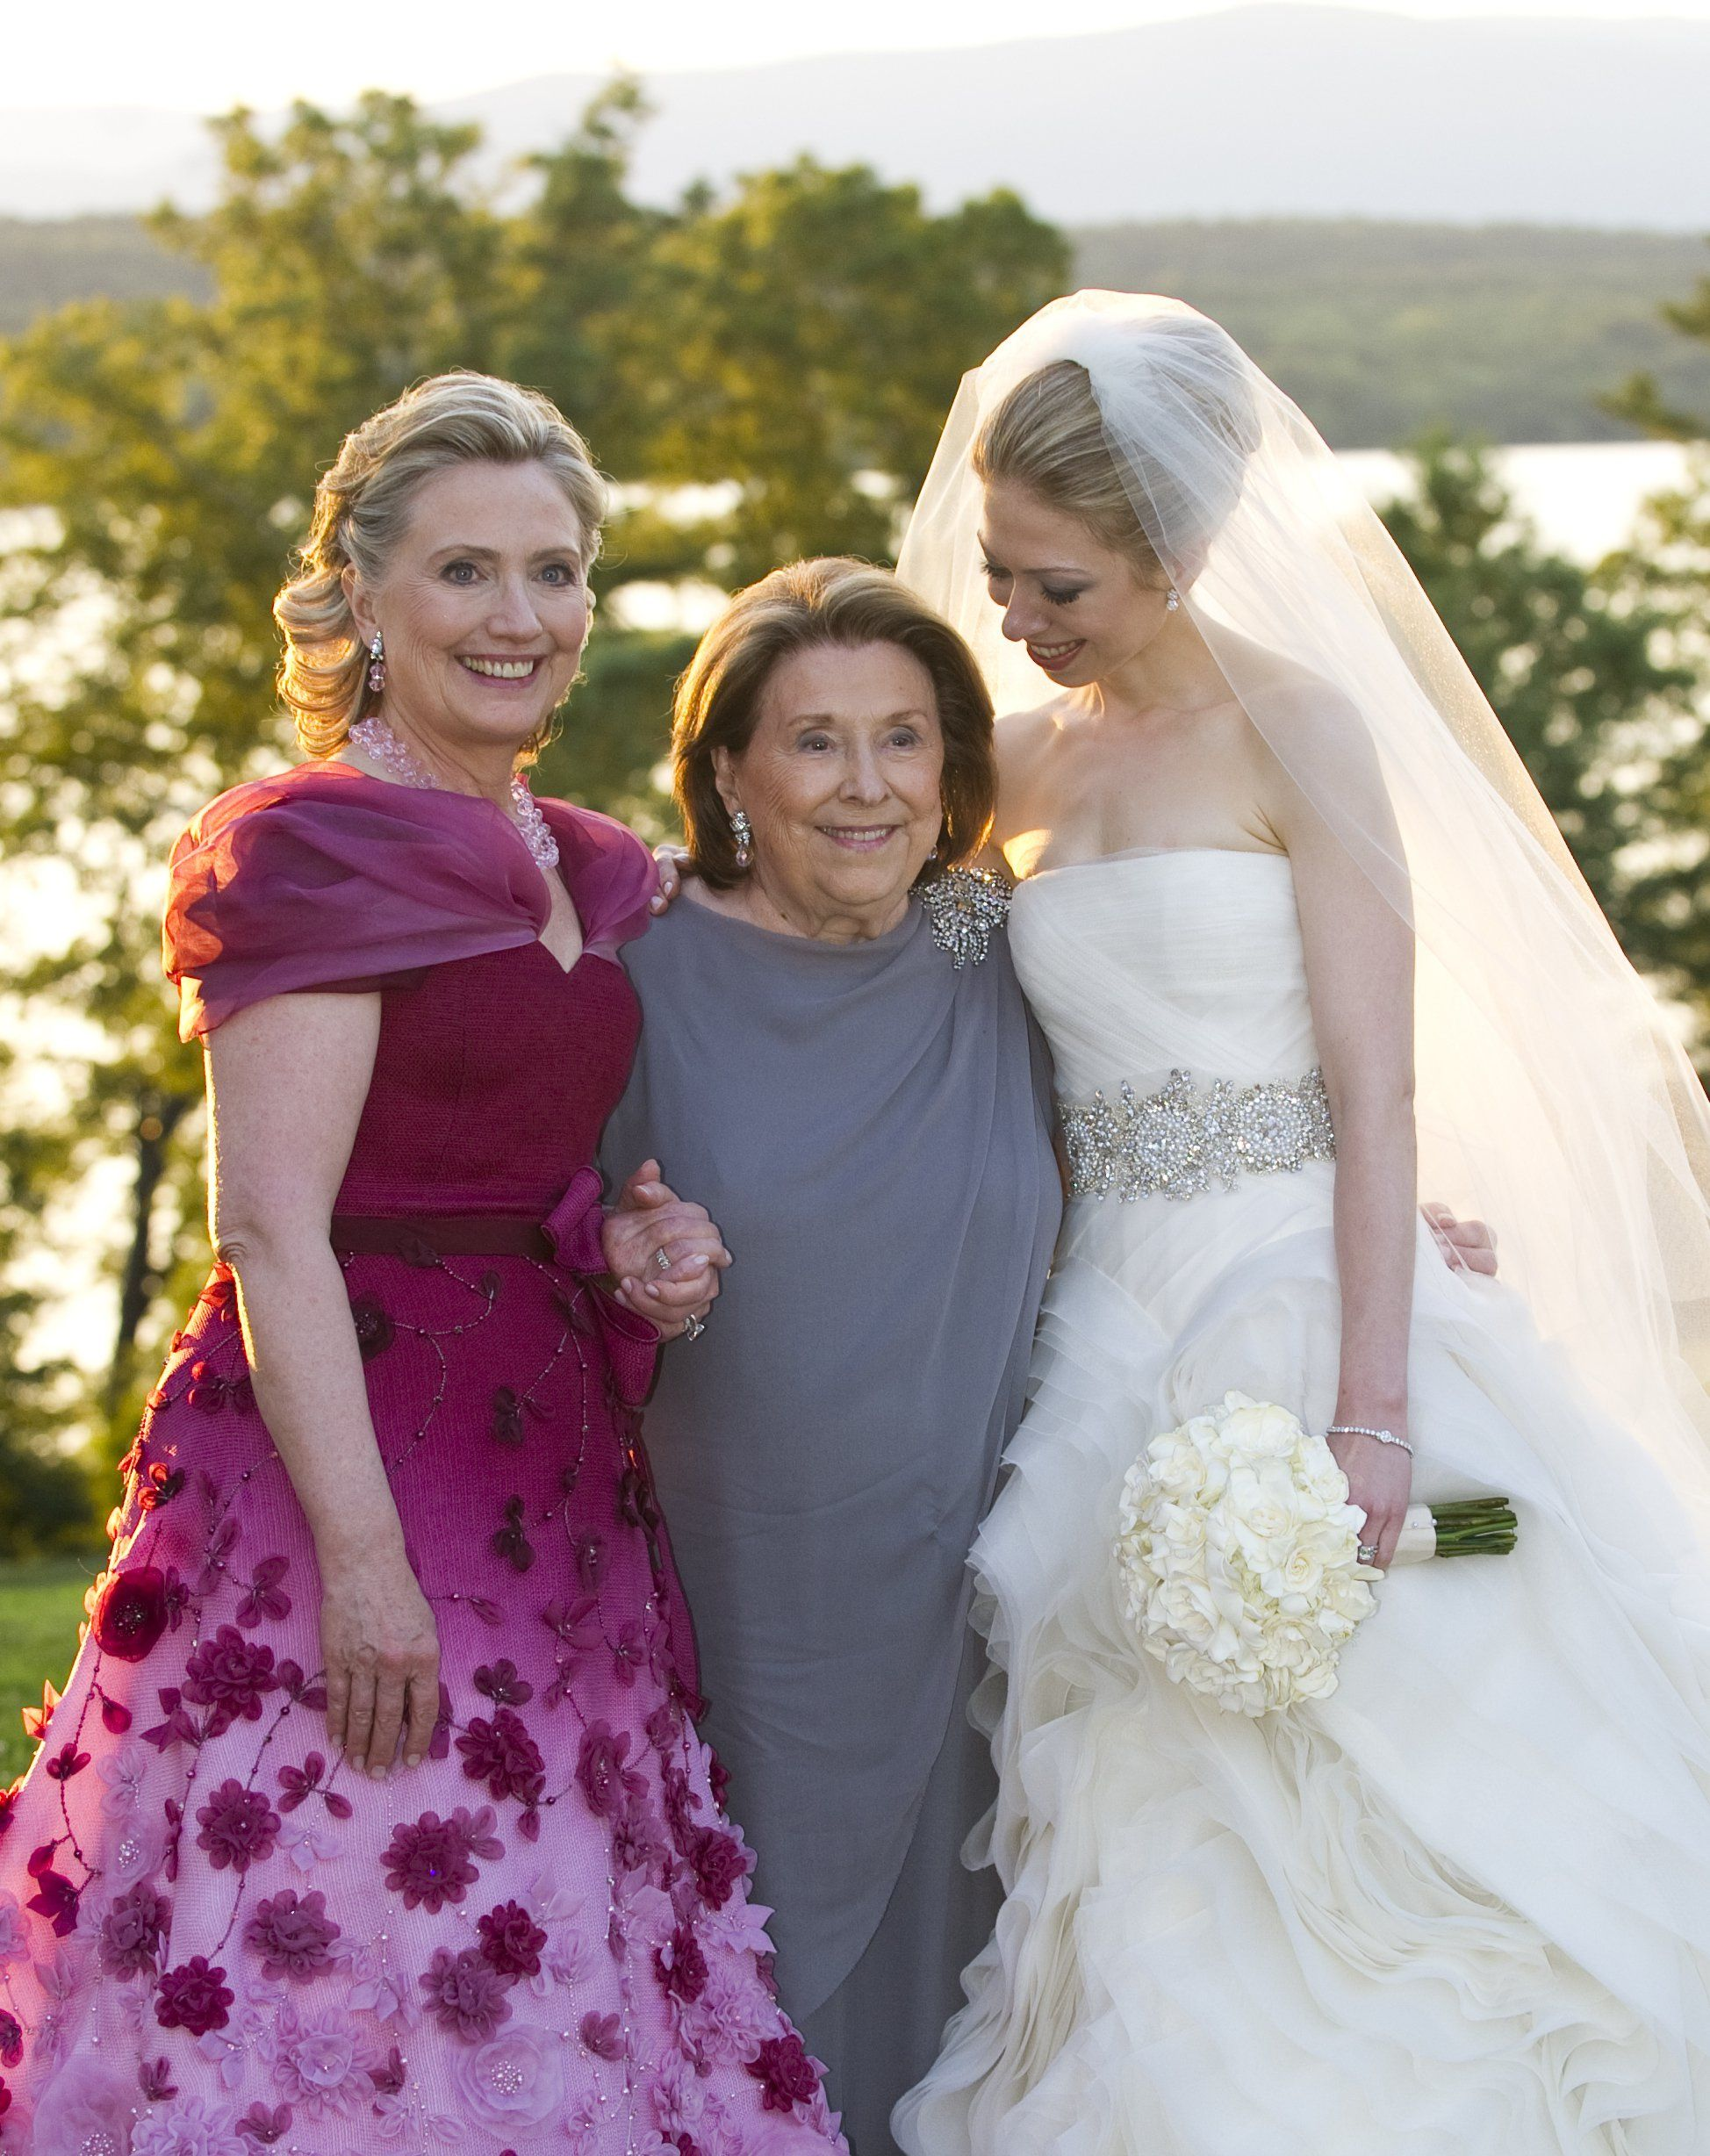 Famous wedding dresses  Image result for hillary and bill clinton wedding photos  Famous